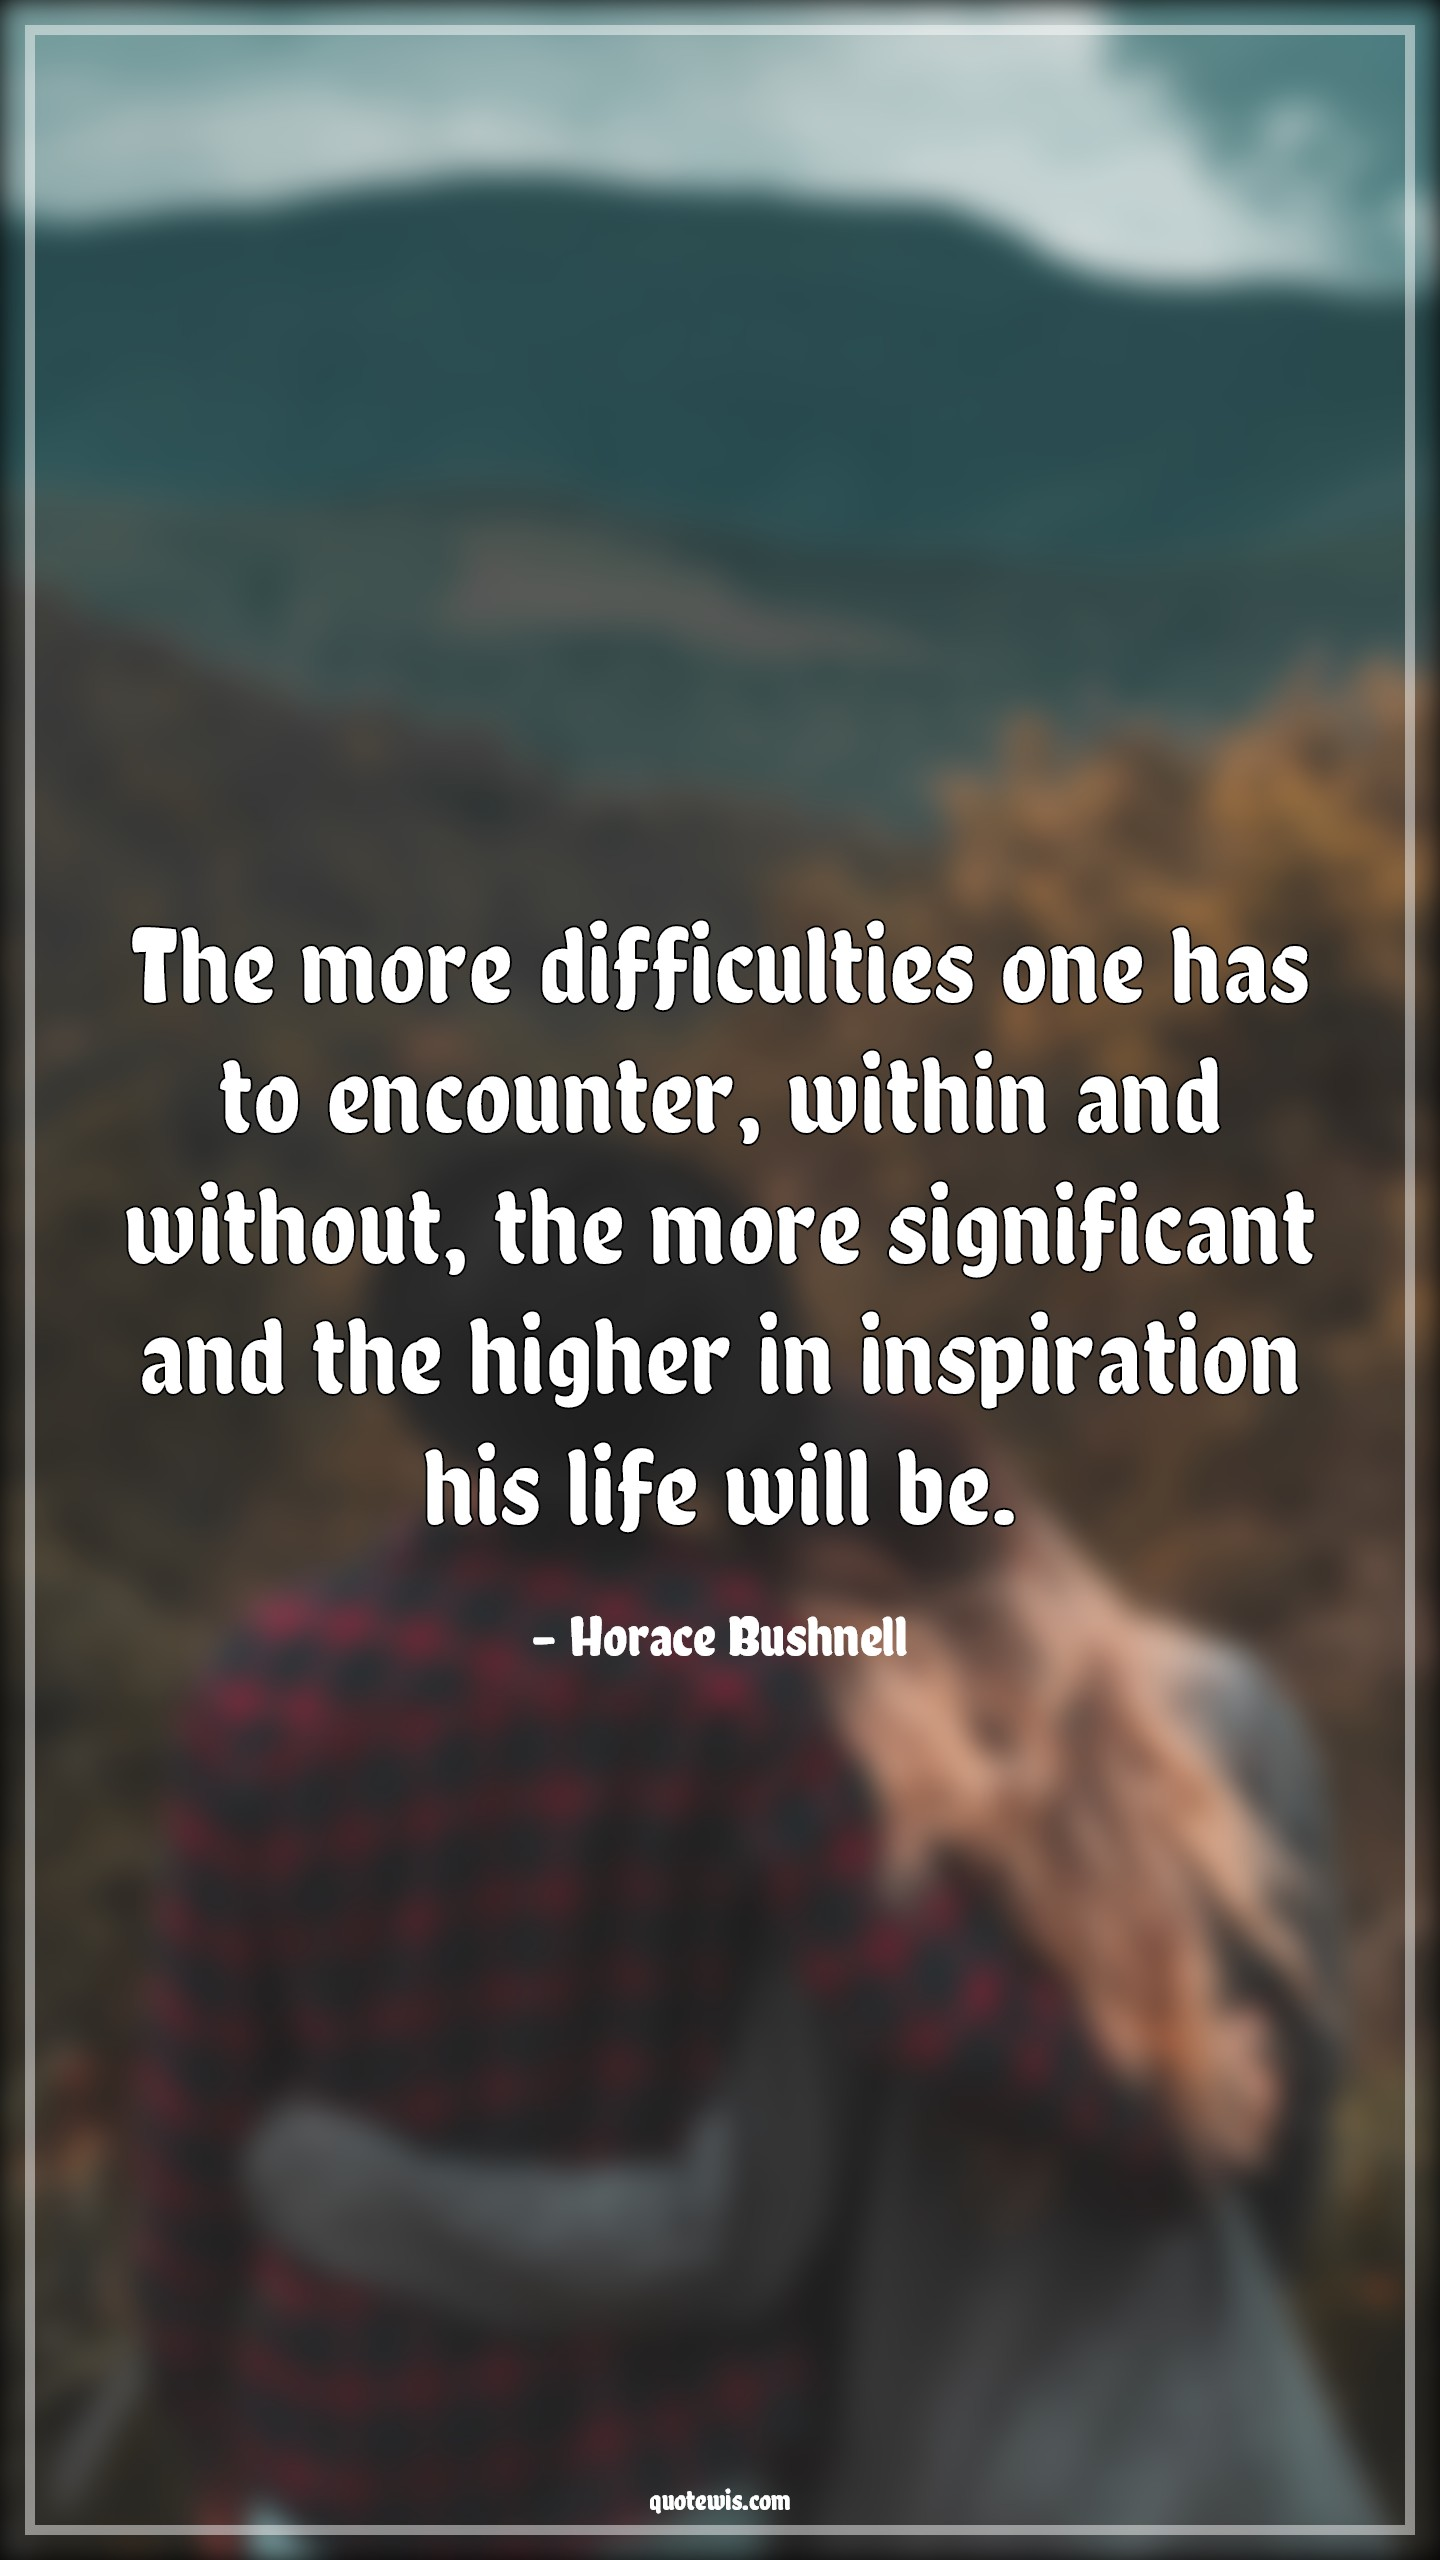 The more difficulties one has to encounter, within and without, the more significant and the higher in inspiration his life will be.